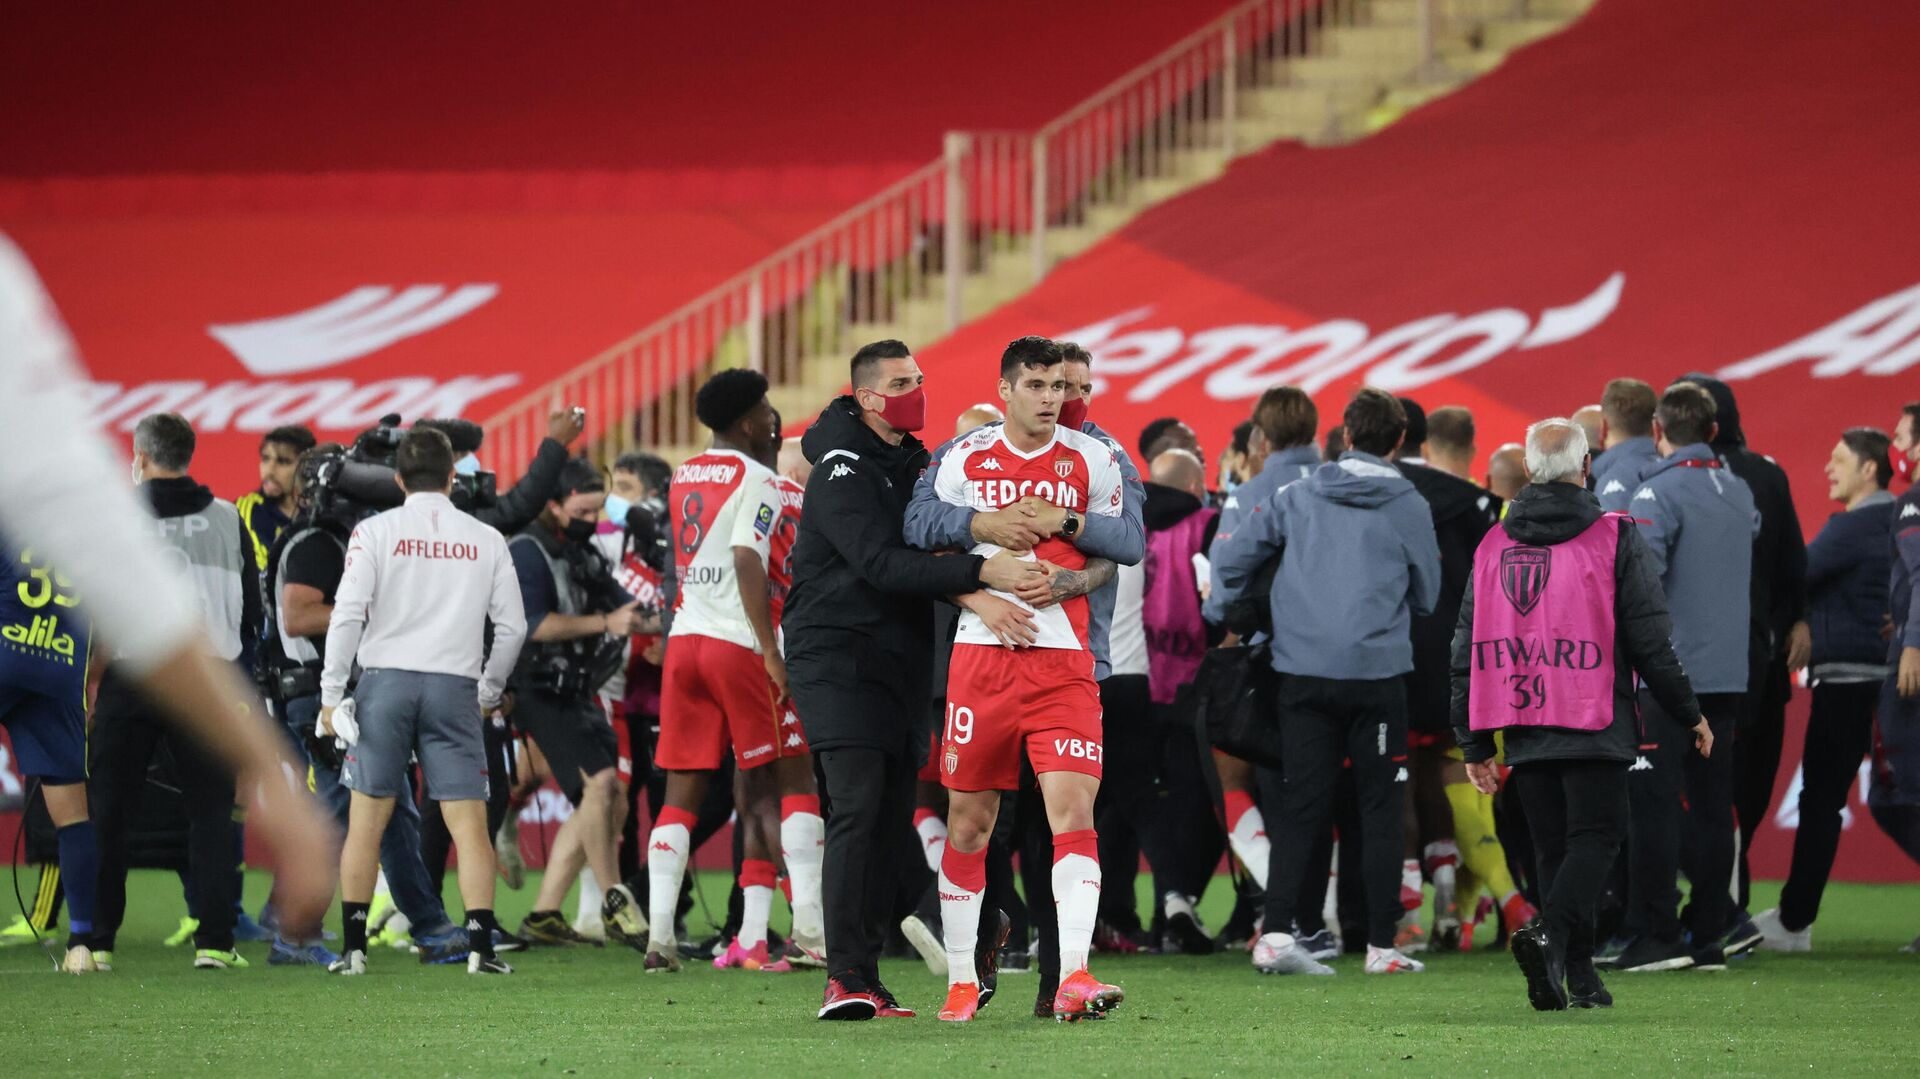 Players argue at the end of the L1 football match between Monaco (ASM) and Lyon (OL) at The Louis II Stadium, in Monaco on May 2, 2021. (Photo by Valery HACHE / AFP) - РИА Новости, 1920, 04.05.2021